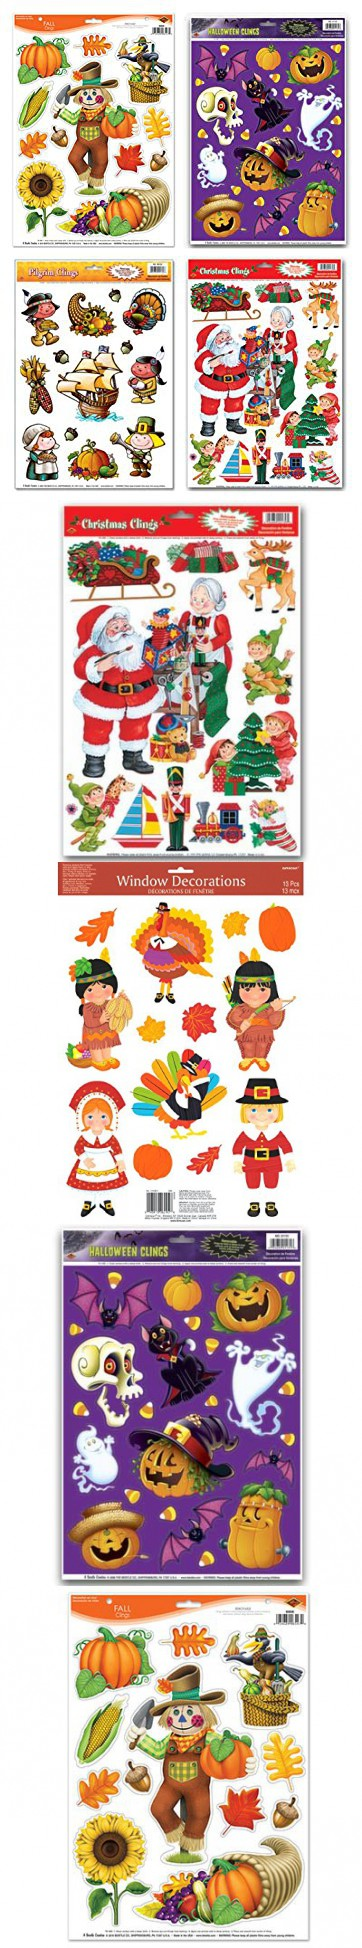 Fall/Winter Holiday Static Cling Window Decorations - 4 Large Sheet - halloween window clings